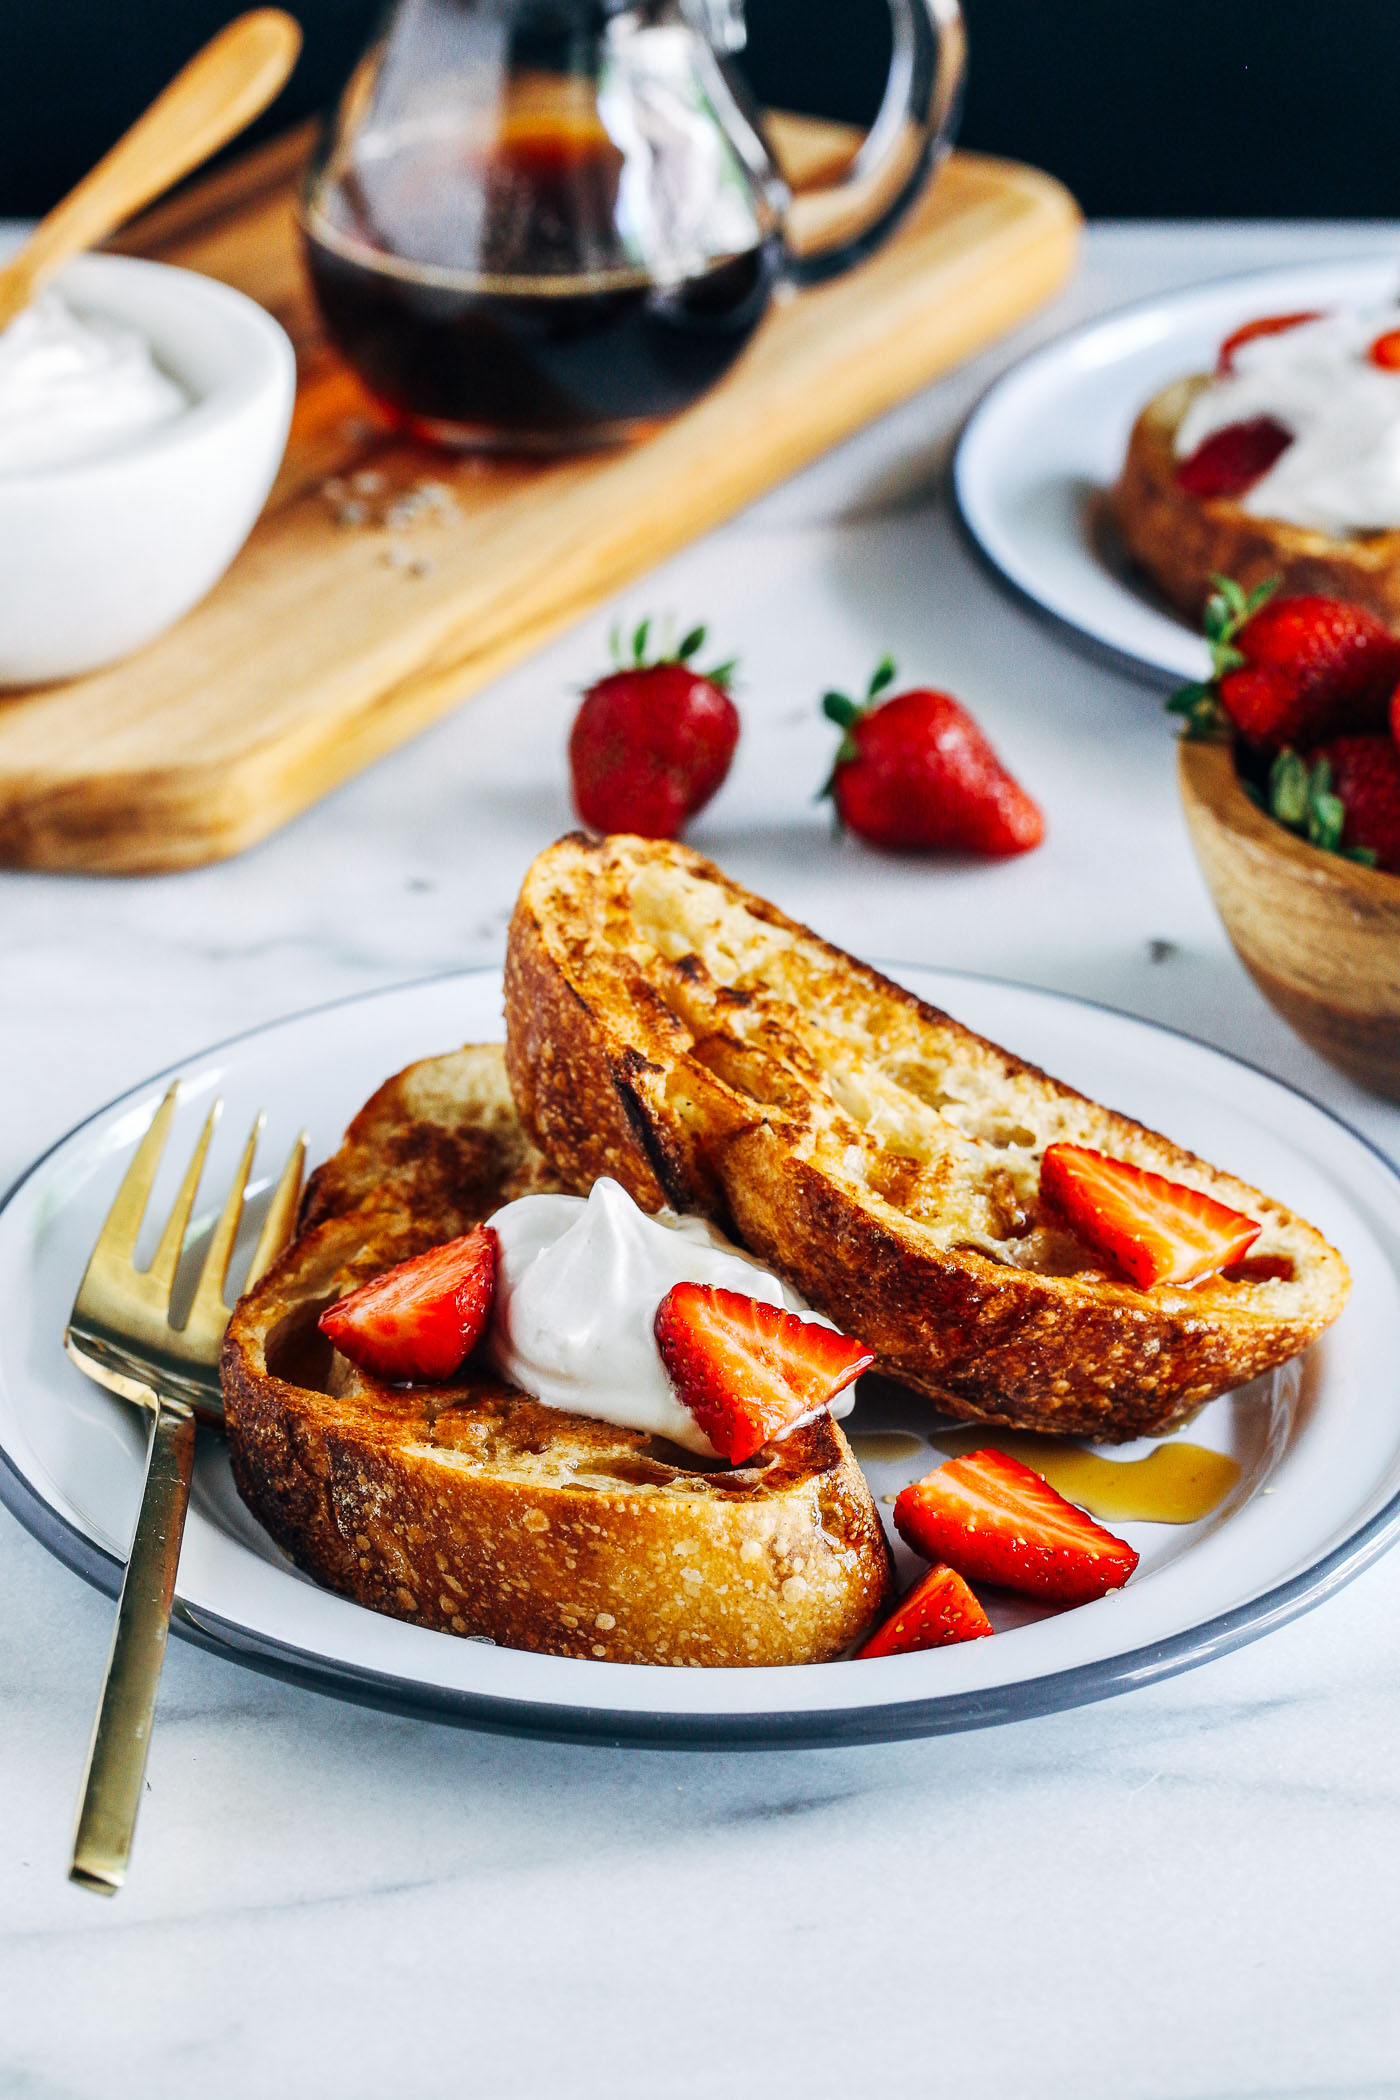 Vegan French Toast With Lavender Infused Syrup Making